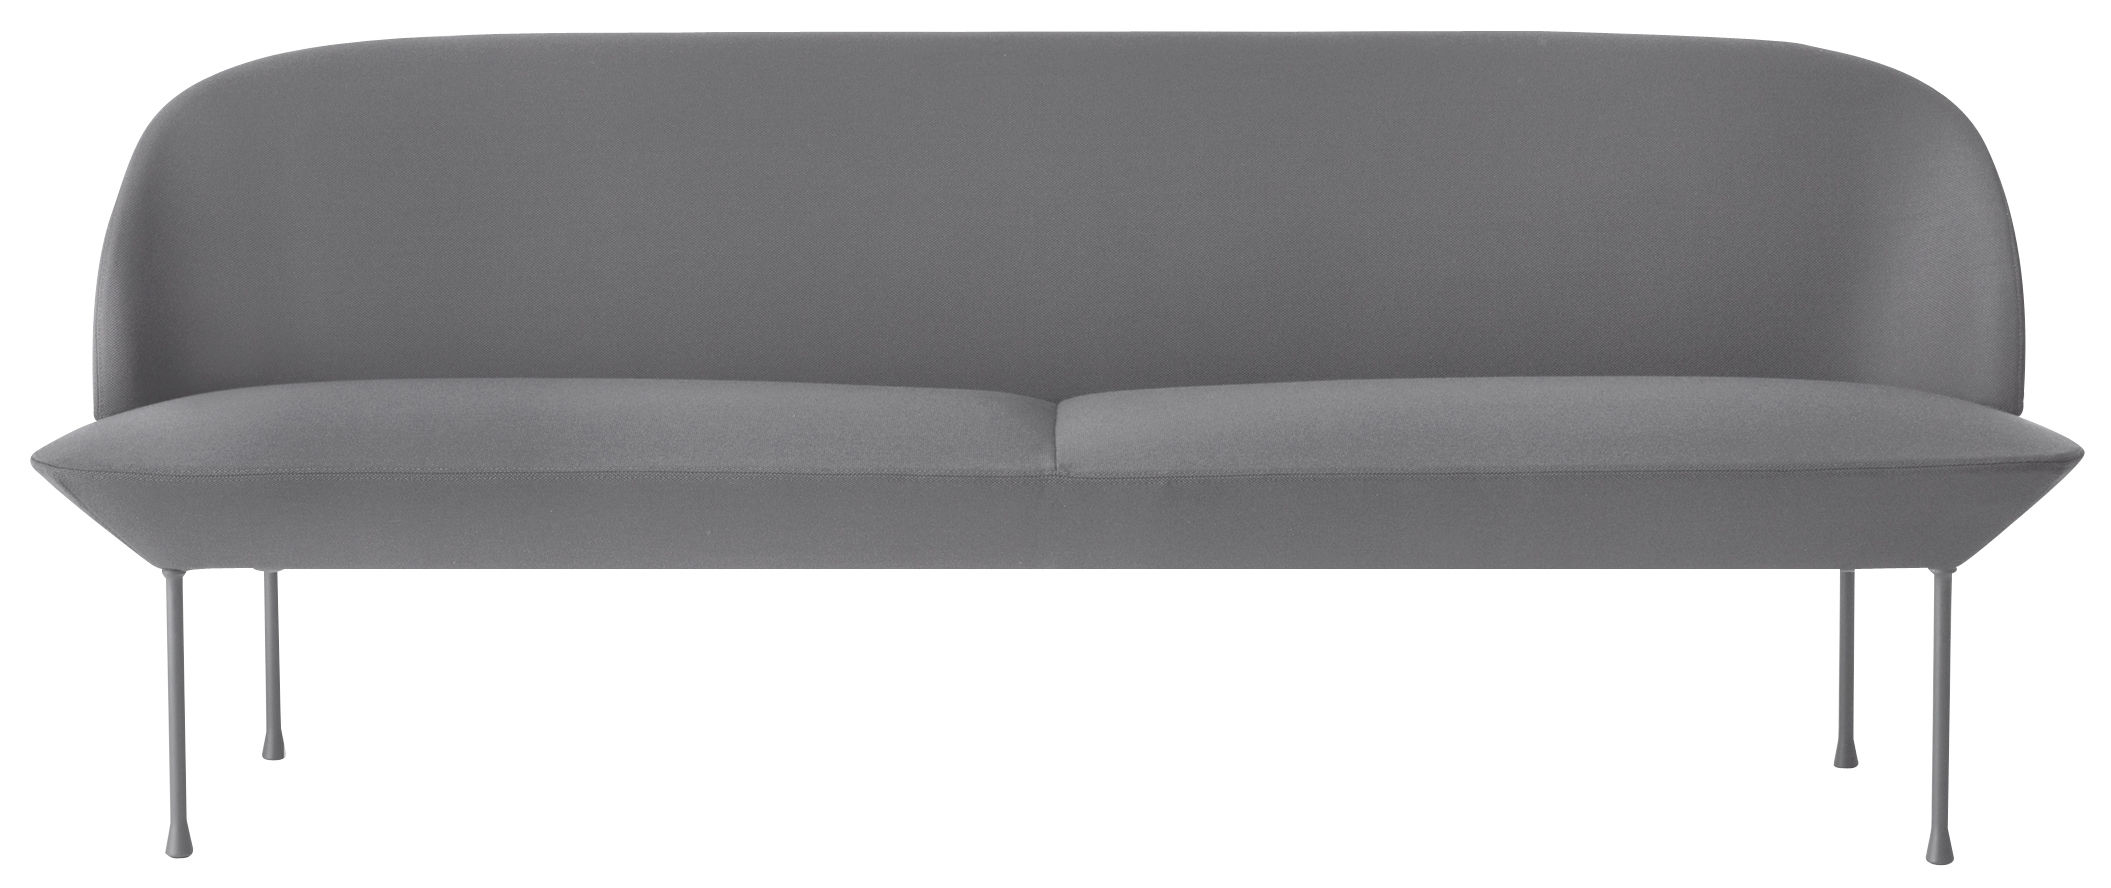 oslo sofa l 200 cm 3 sitzer hellgrau by muuto made in design. Black Bedroom Furniture Sets. Home Design Ideas